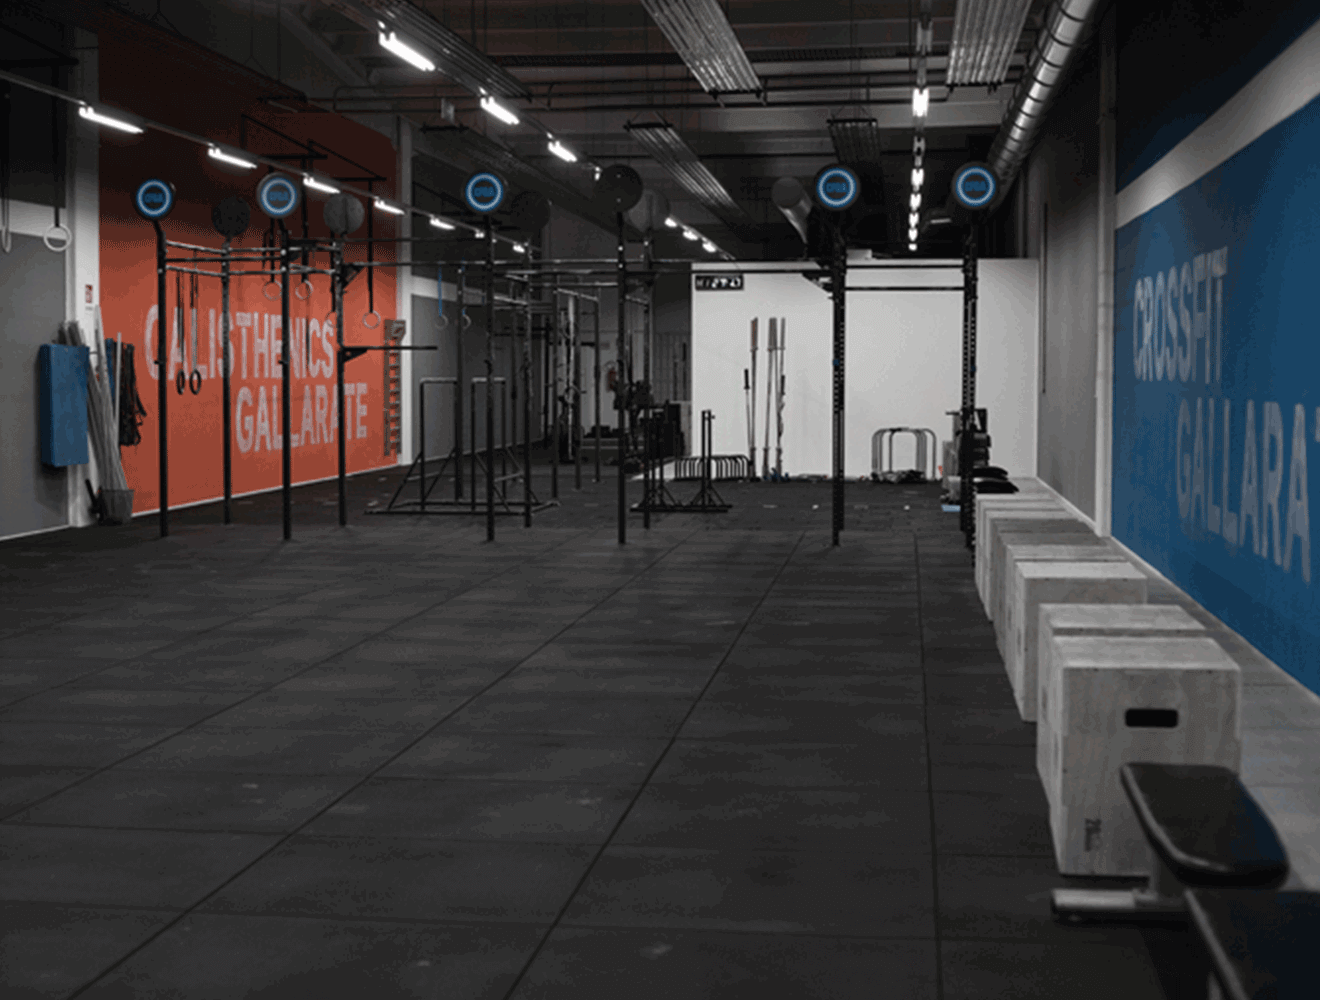 CrossfitGallarate - IlBox_01